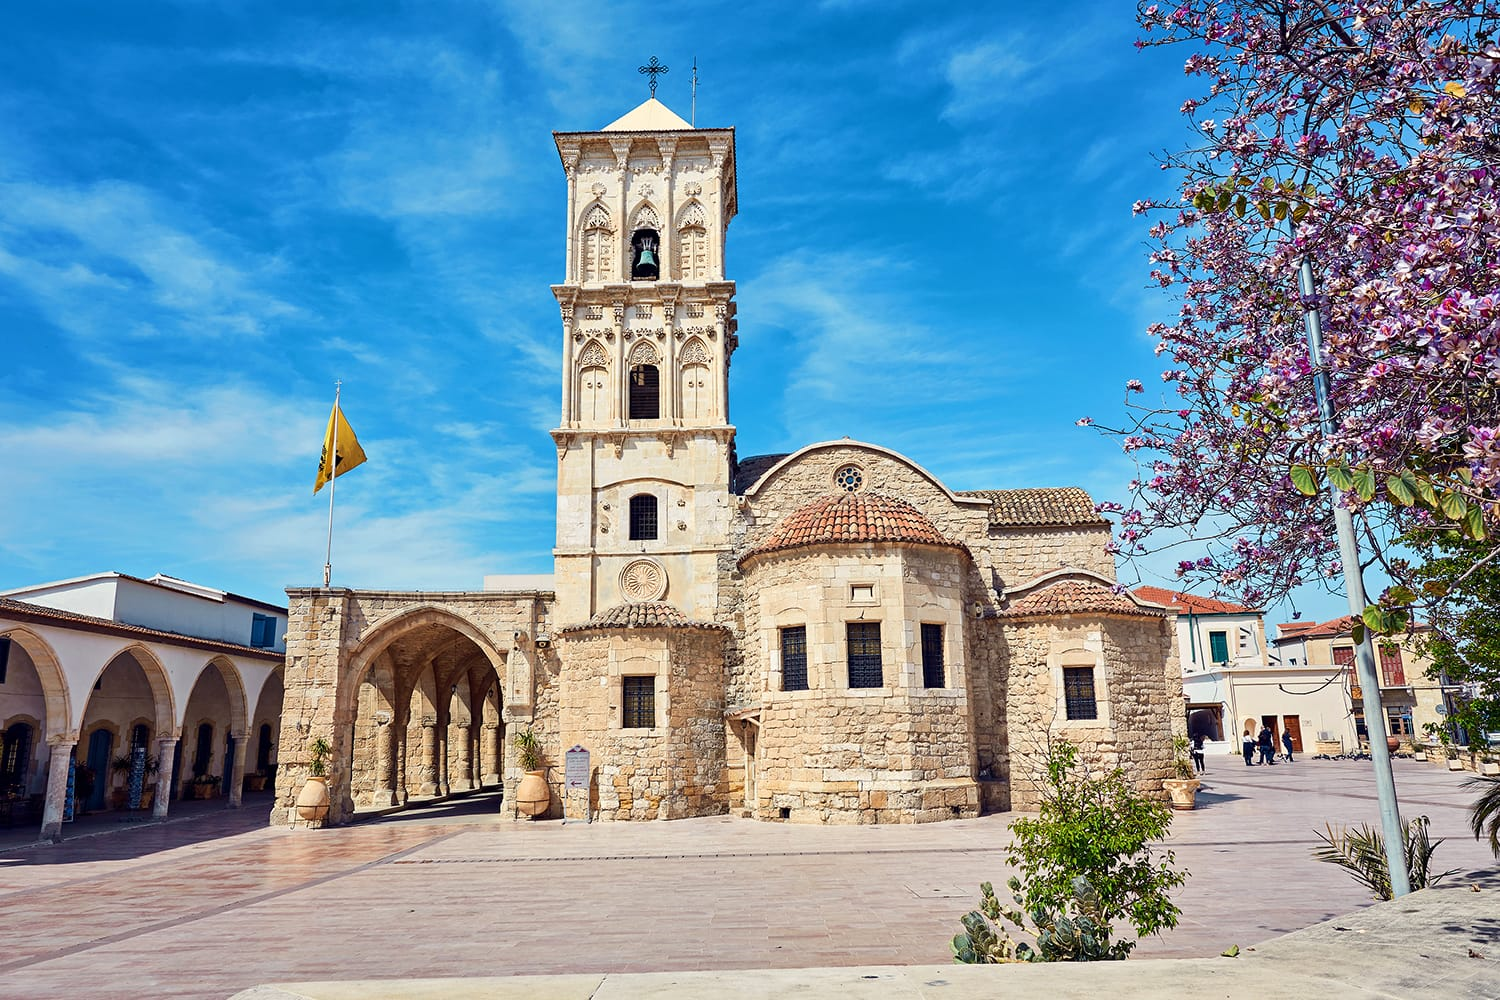 The front of the Church of Saint Lazarus, a late-9th century church in Larnaca, Cyprus